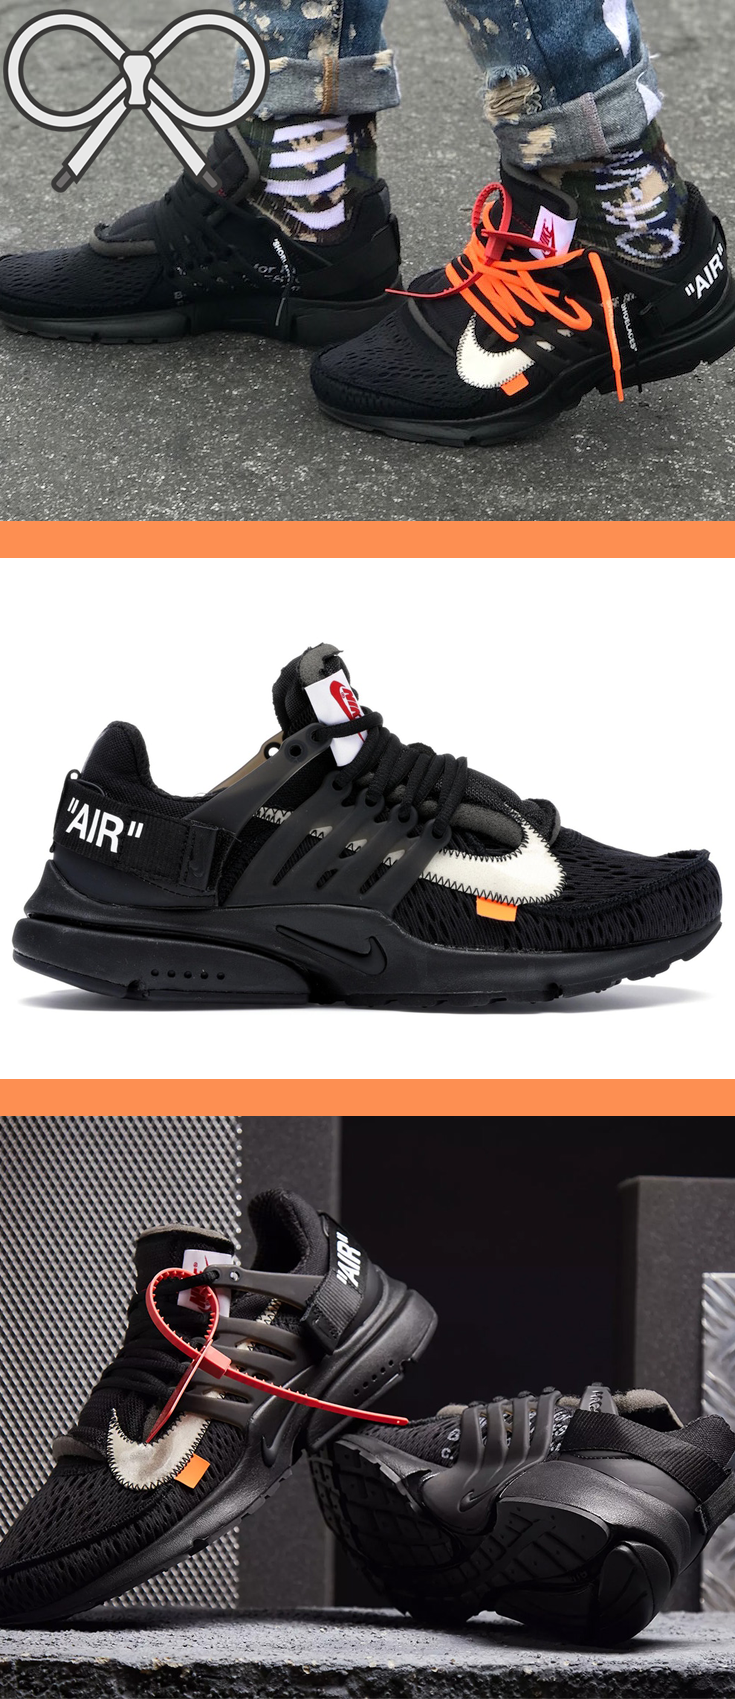 847d98cc2af8 Black White-Cone colorway. Making it s return after Abloh s first ...